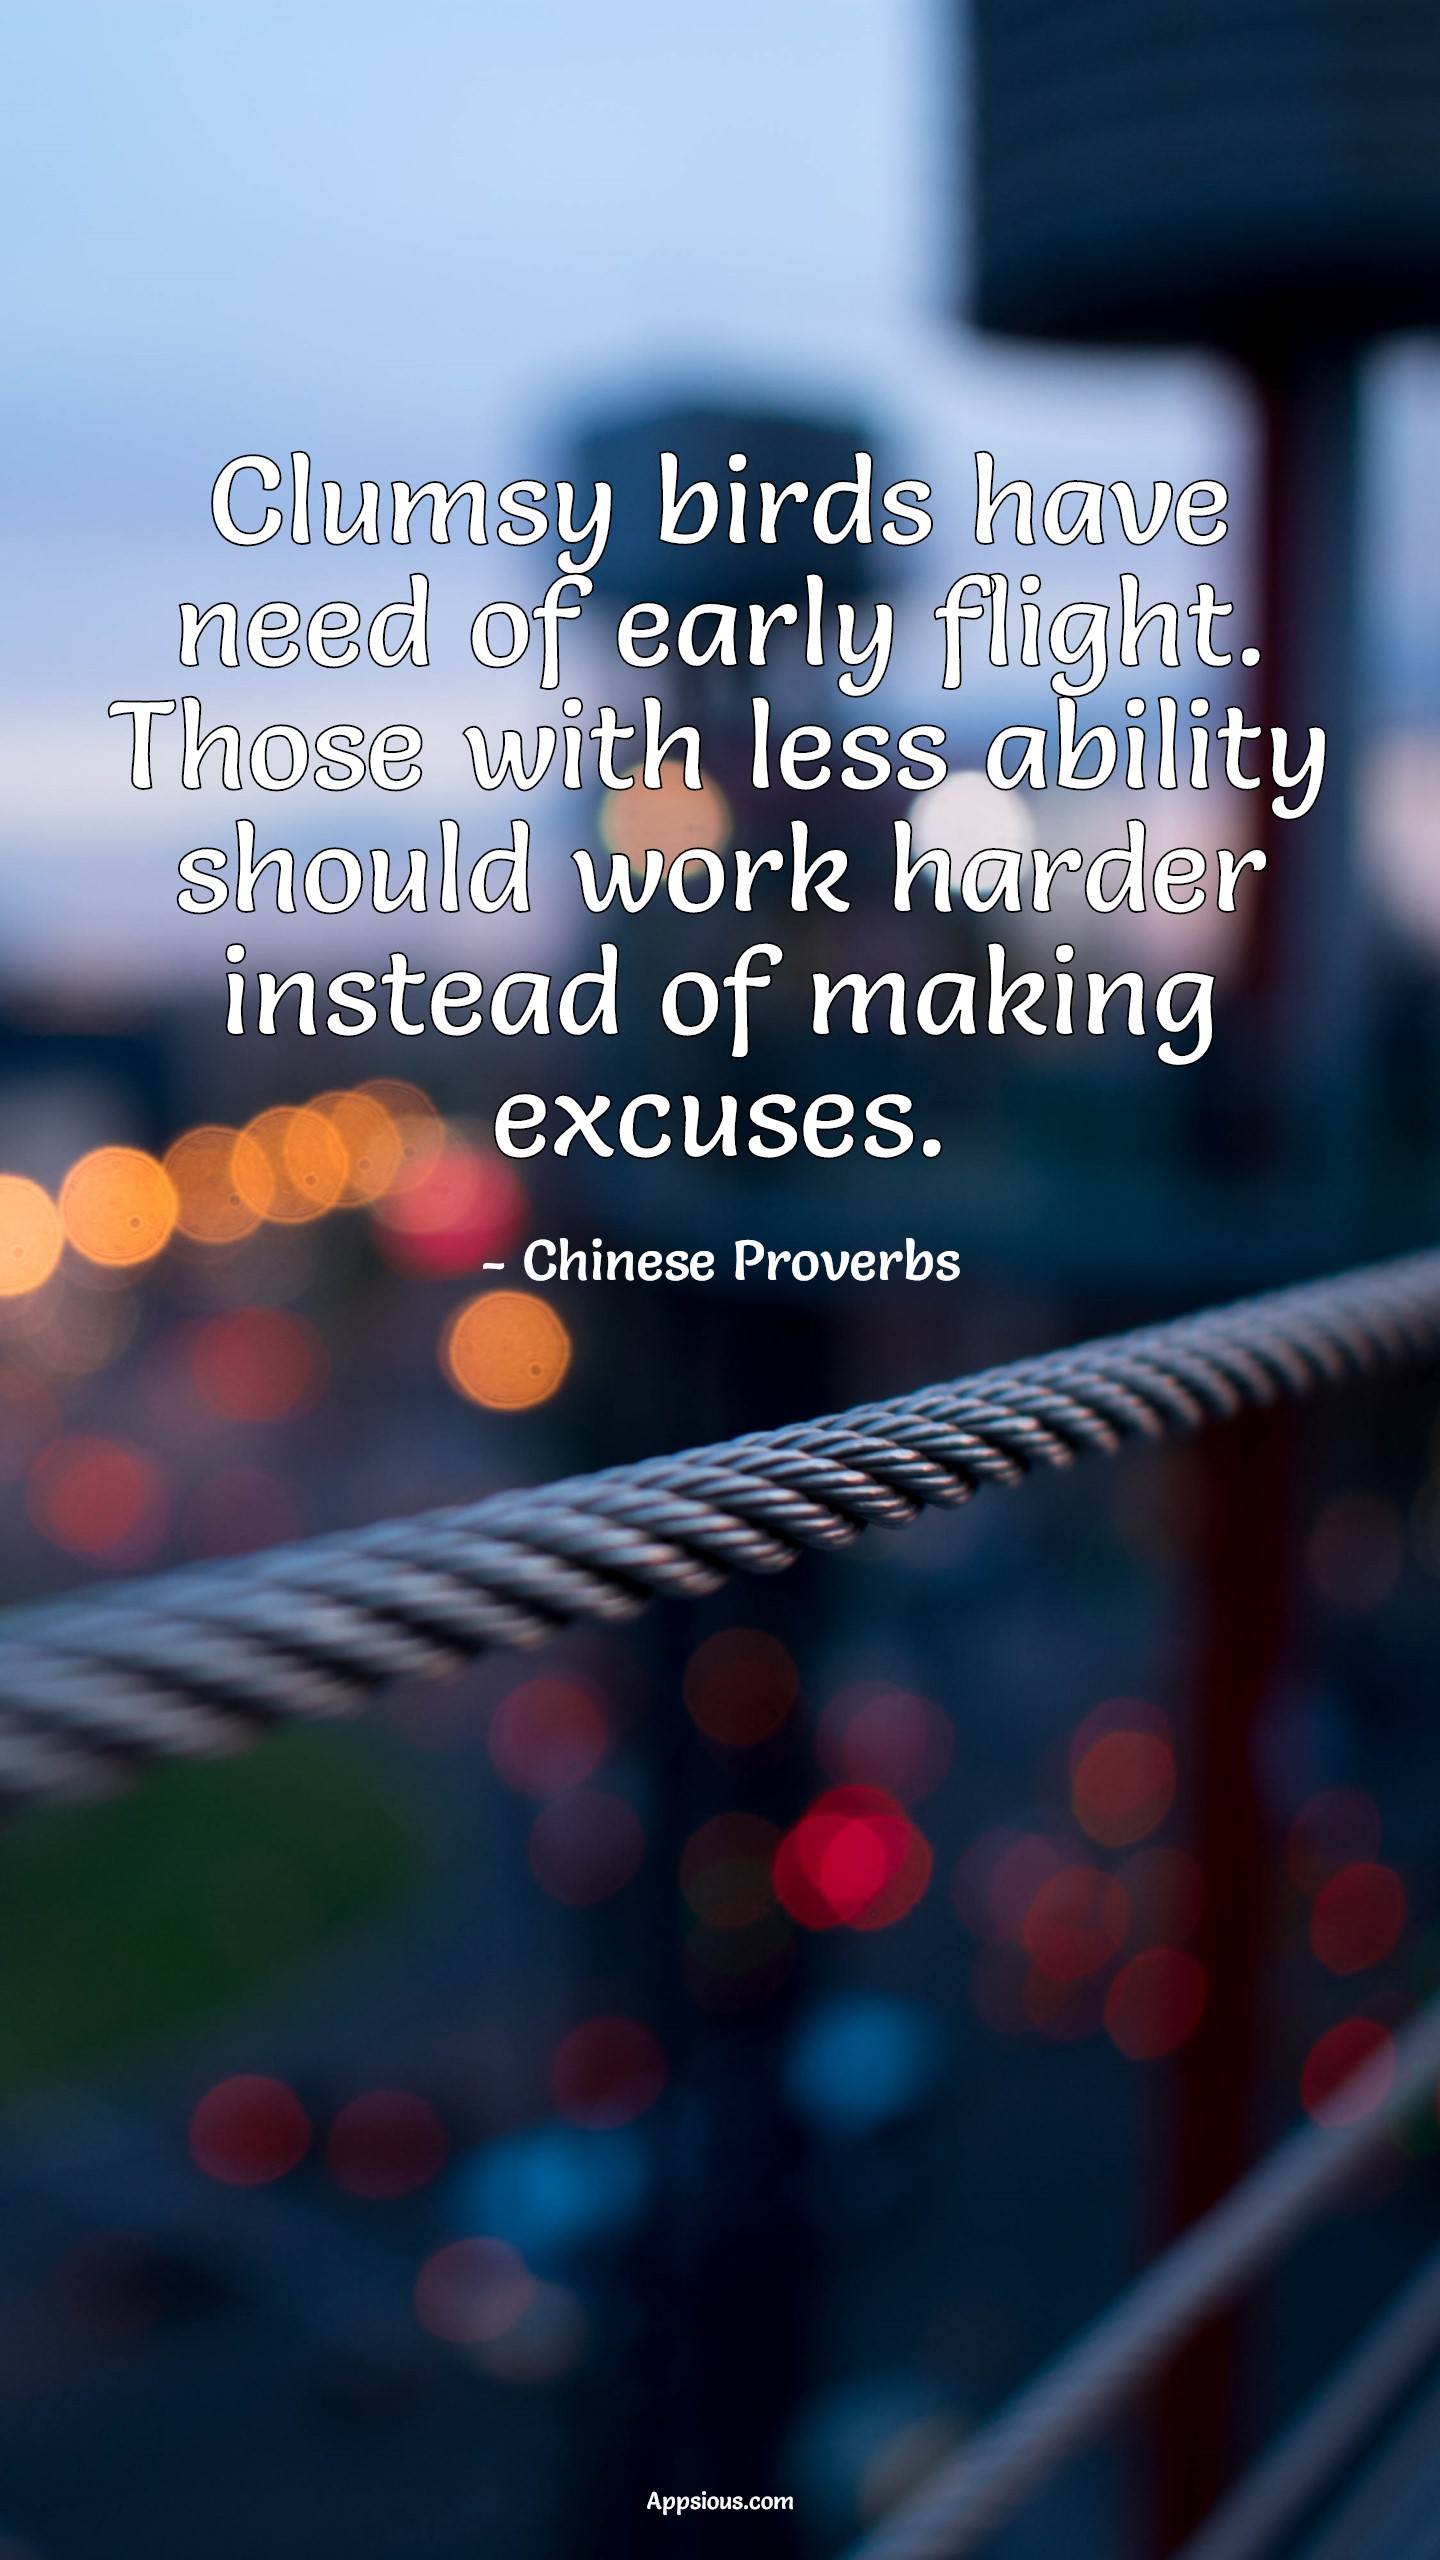 Clumsy birds have need of early flight. Those with less ability should work harder instead of making excuses.